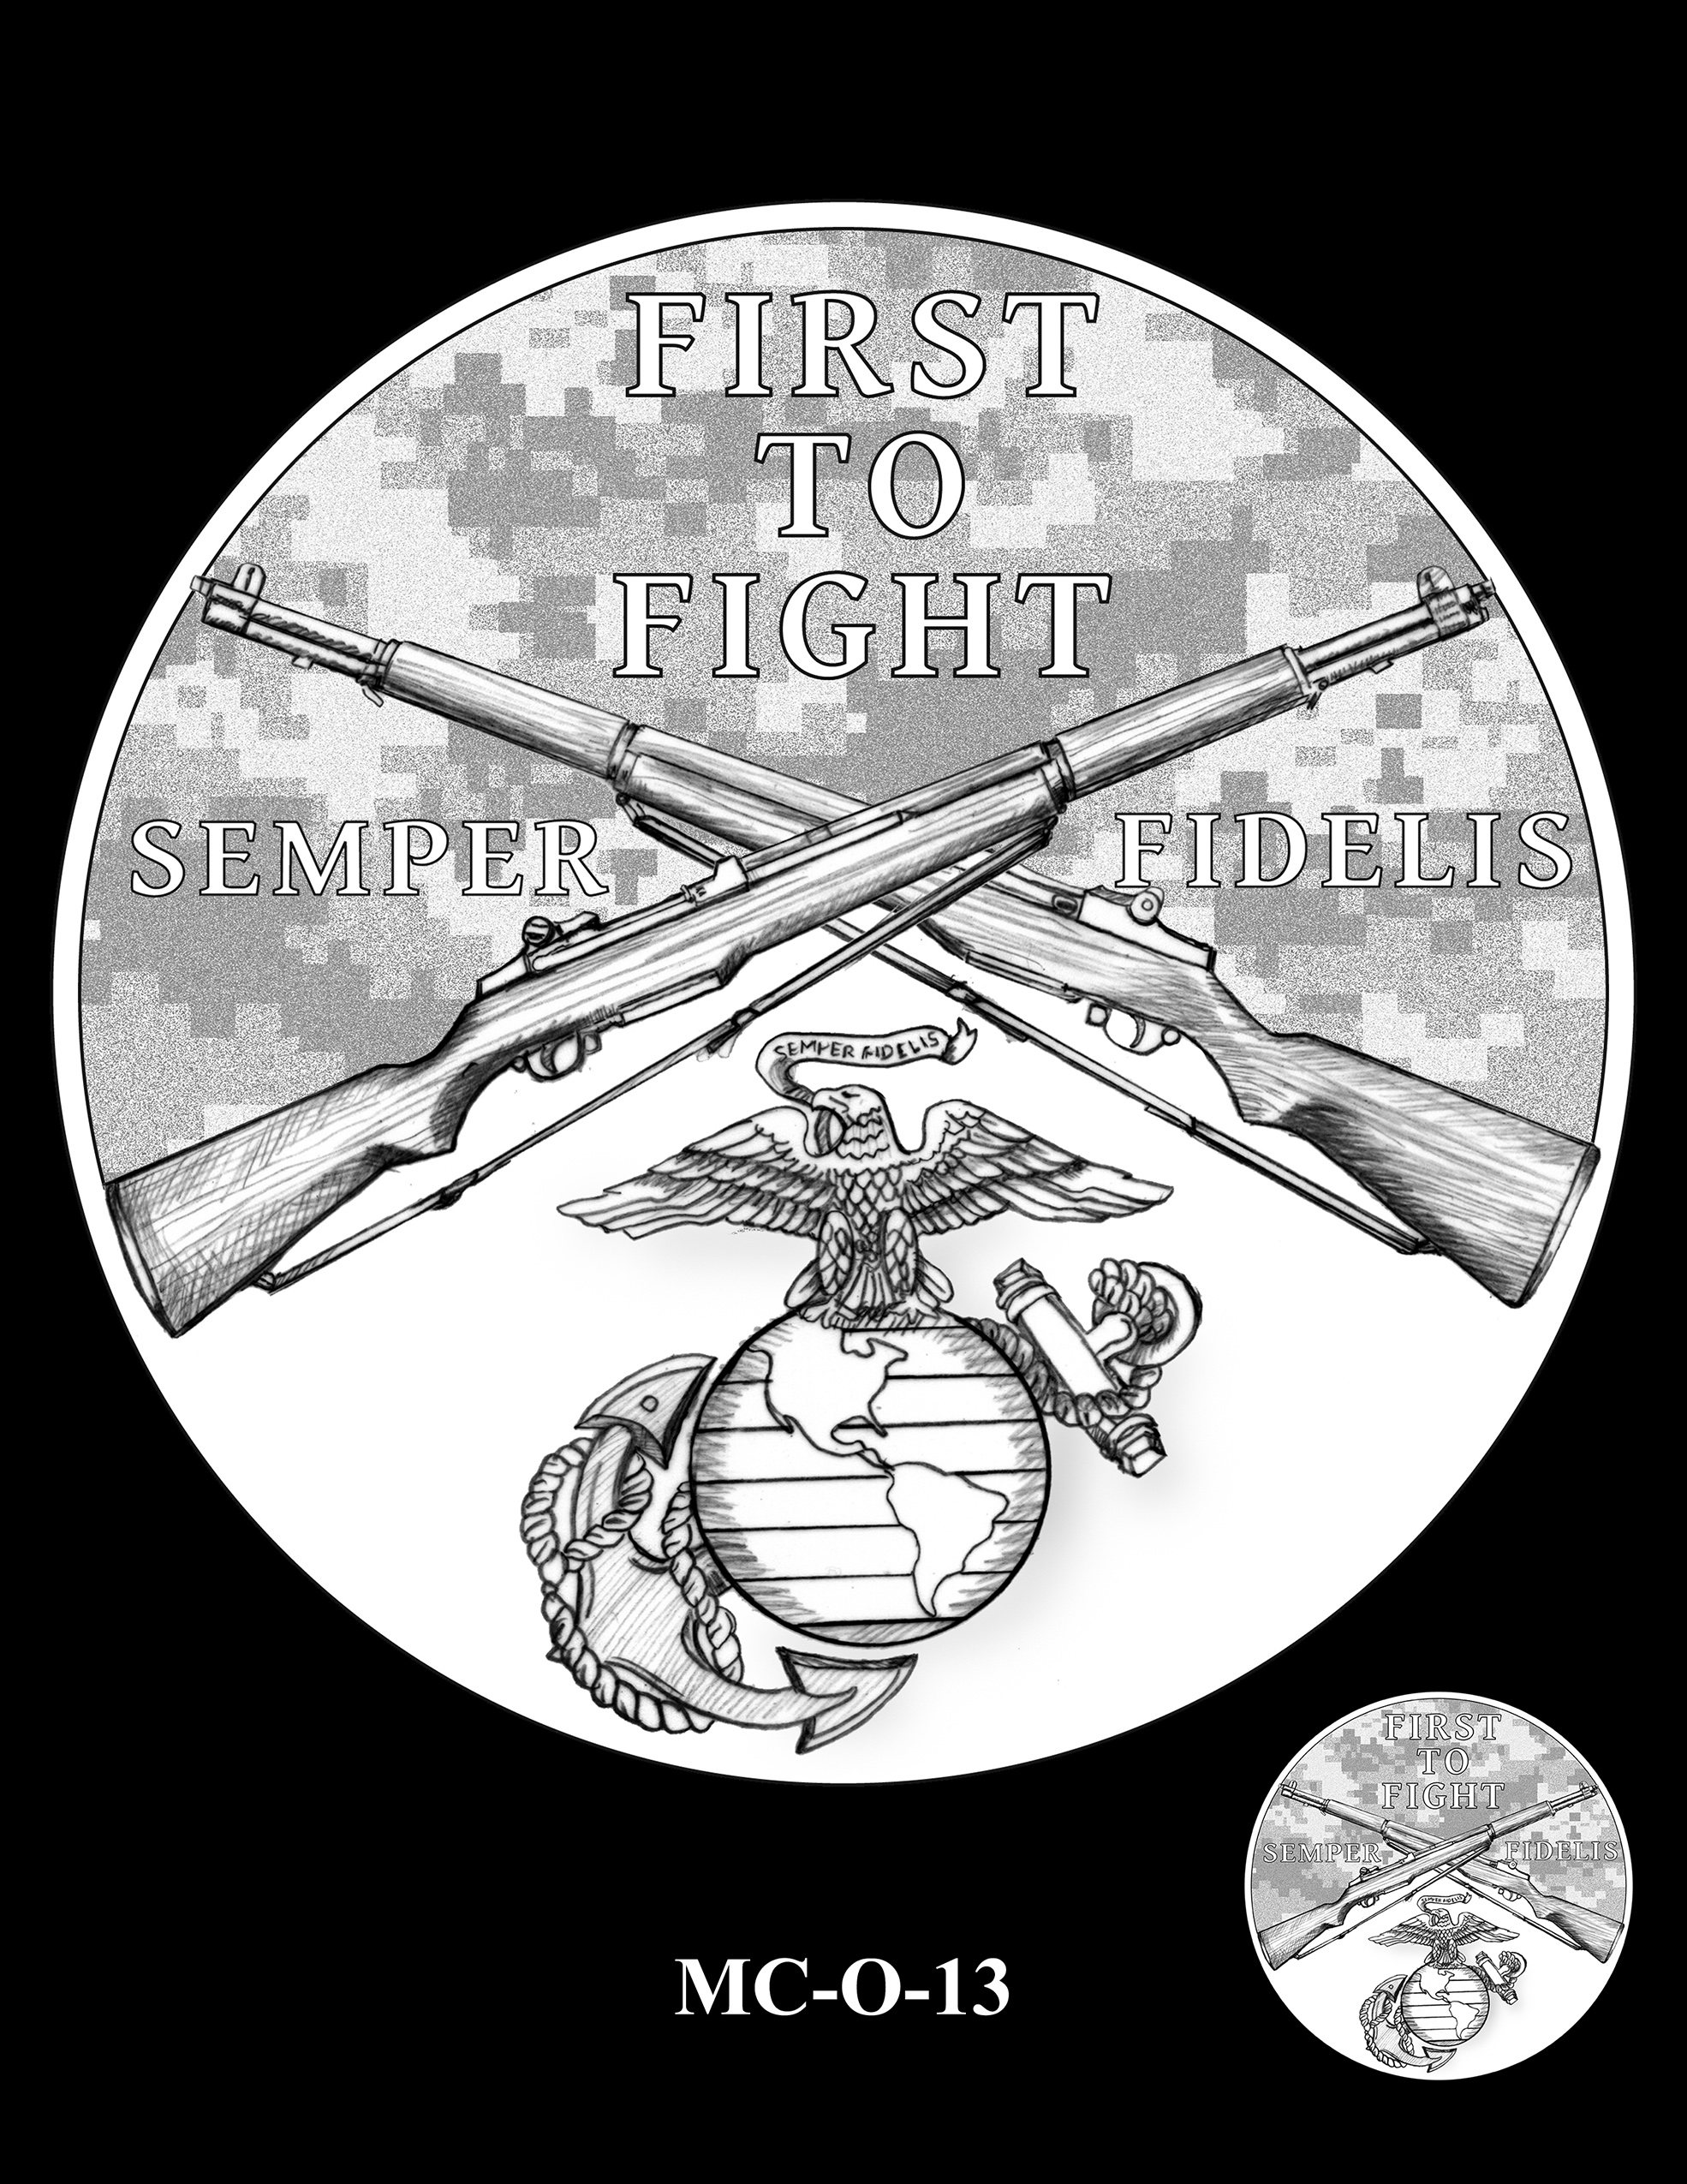 MC-O-13 -- United States Marine Corps Silver Medal